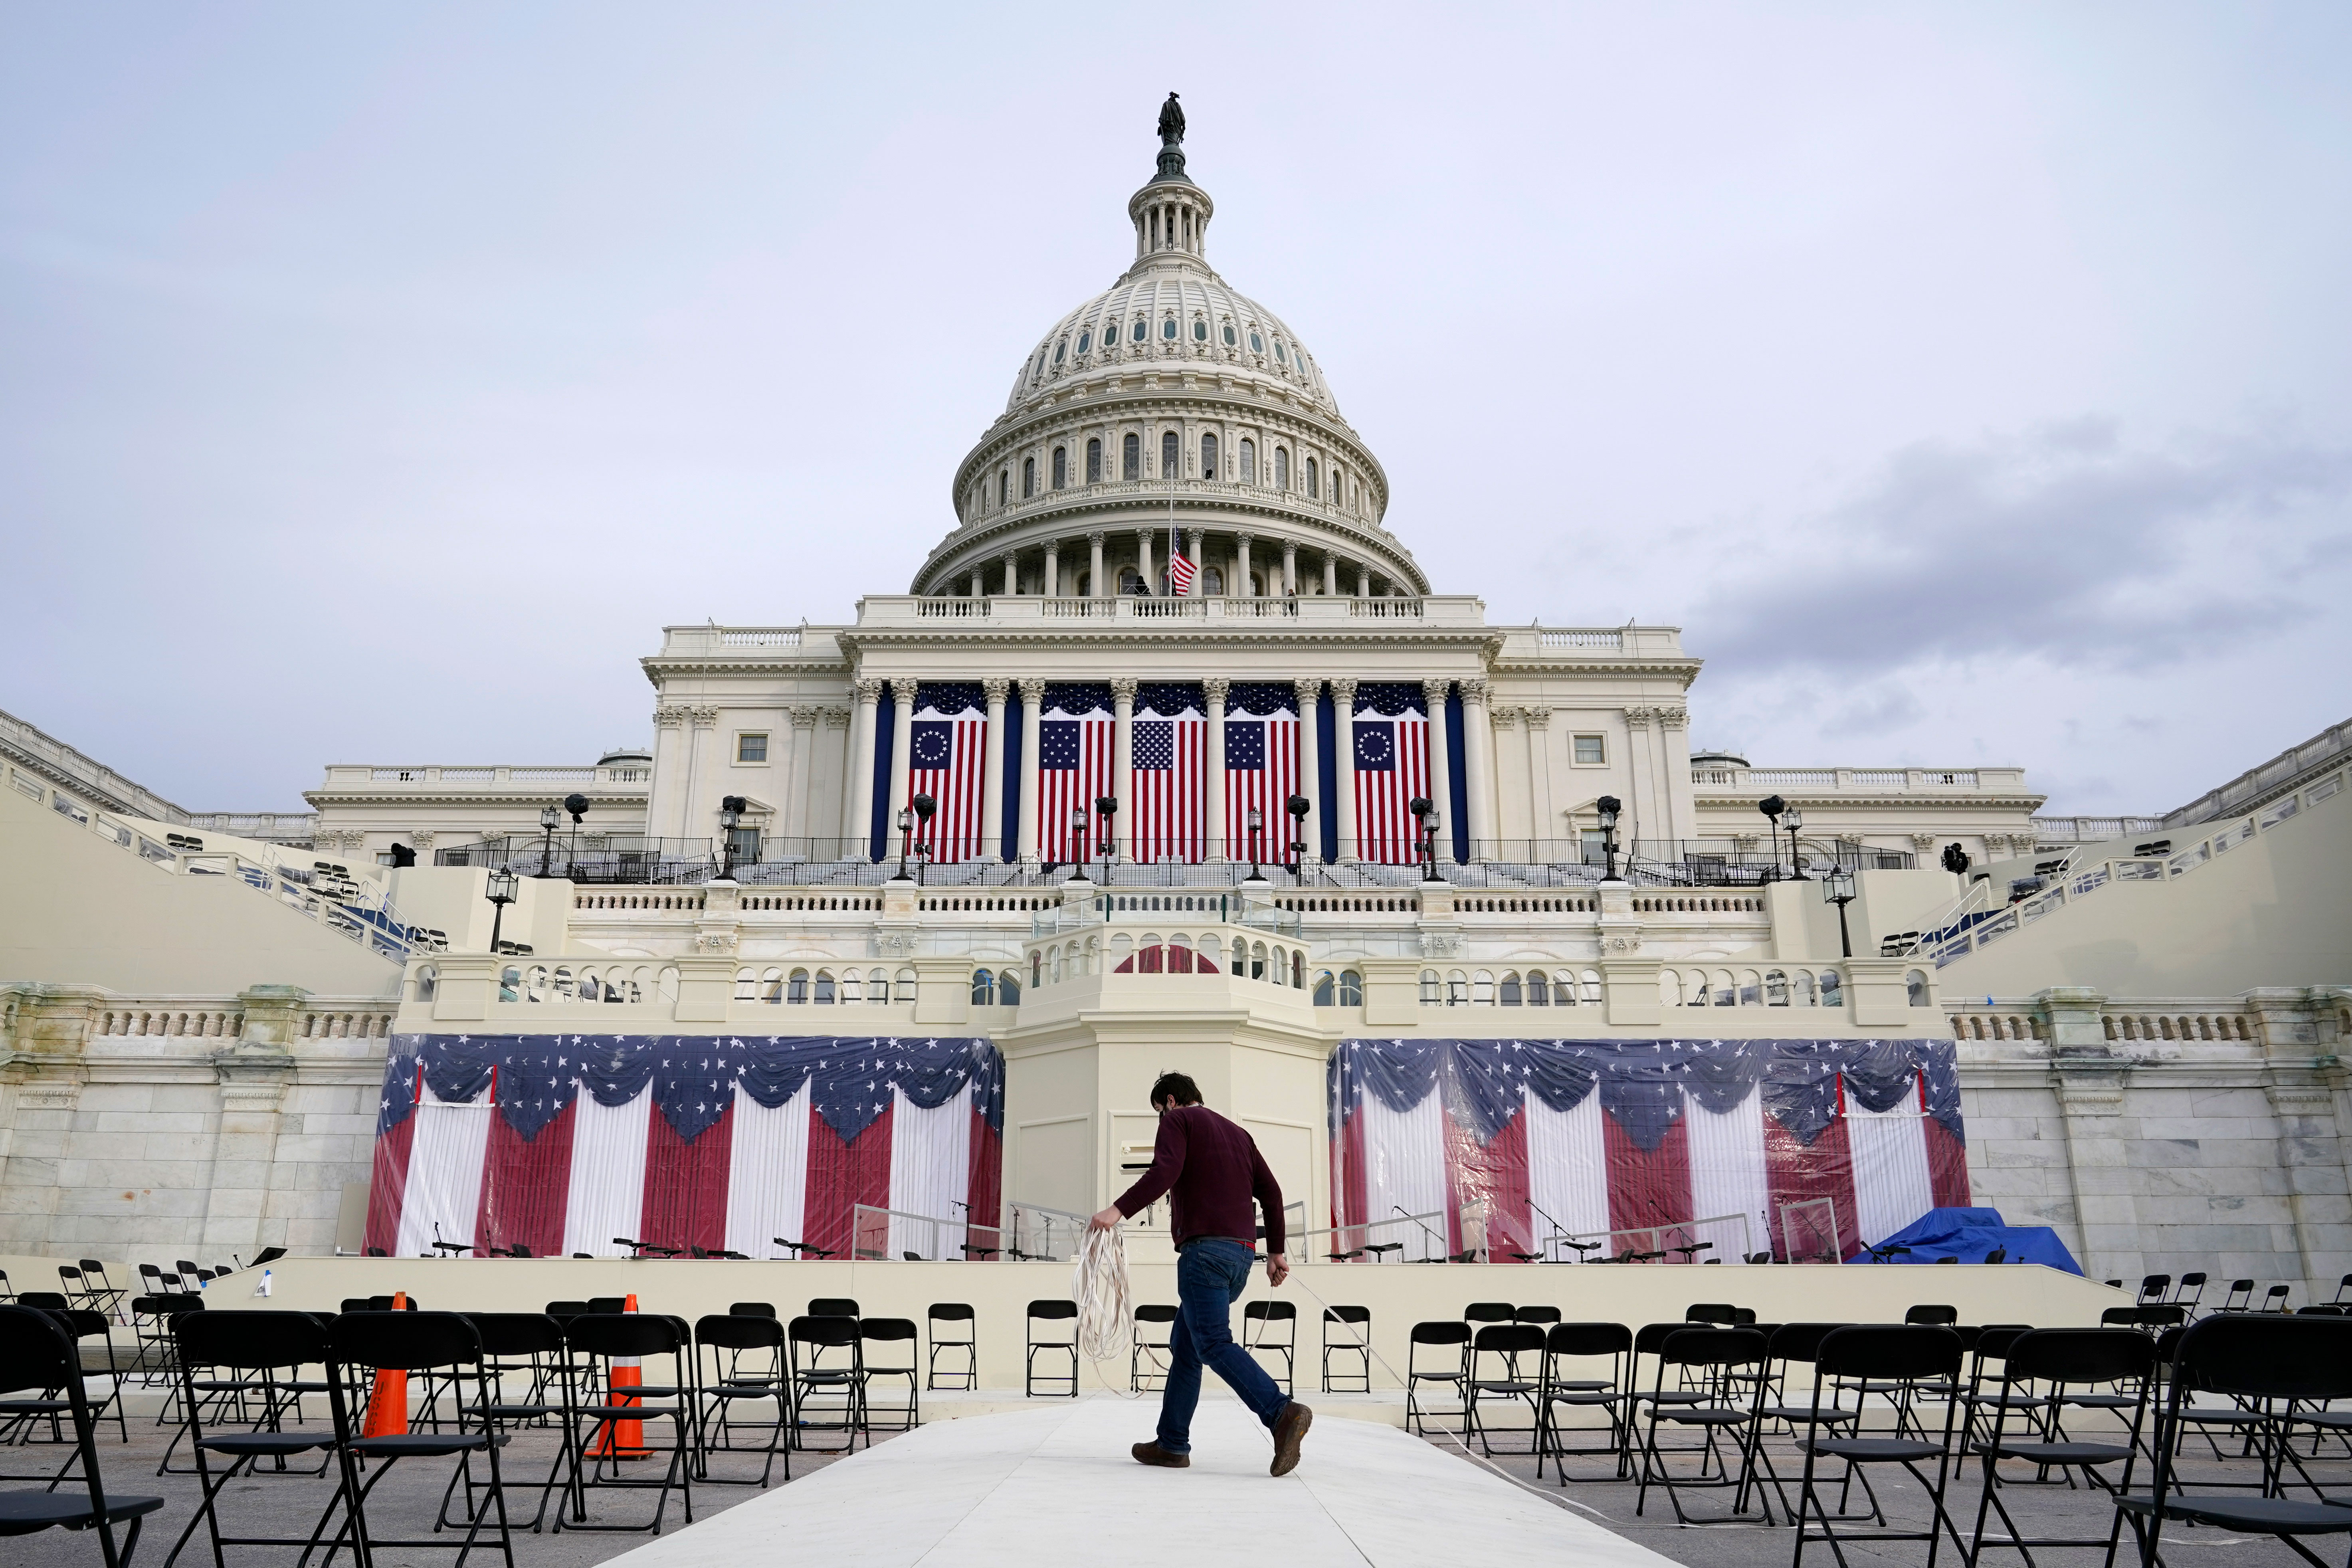 A worker pulls cables as preparations take place on January 16 at the Capitol for President-elect Joe Biden's inauguration ceremony.